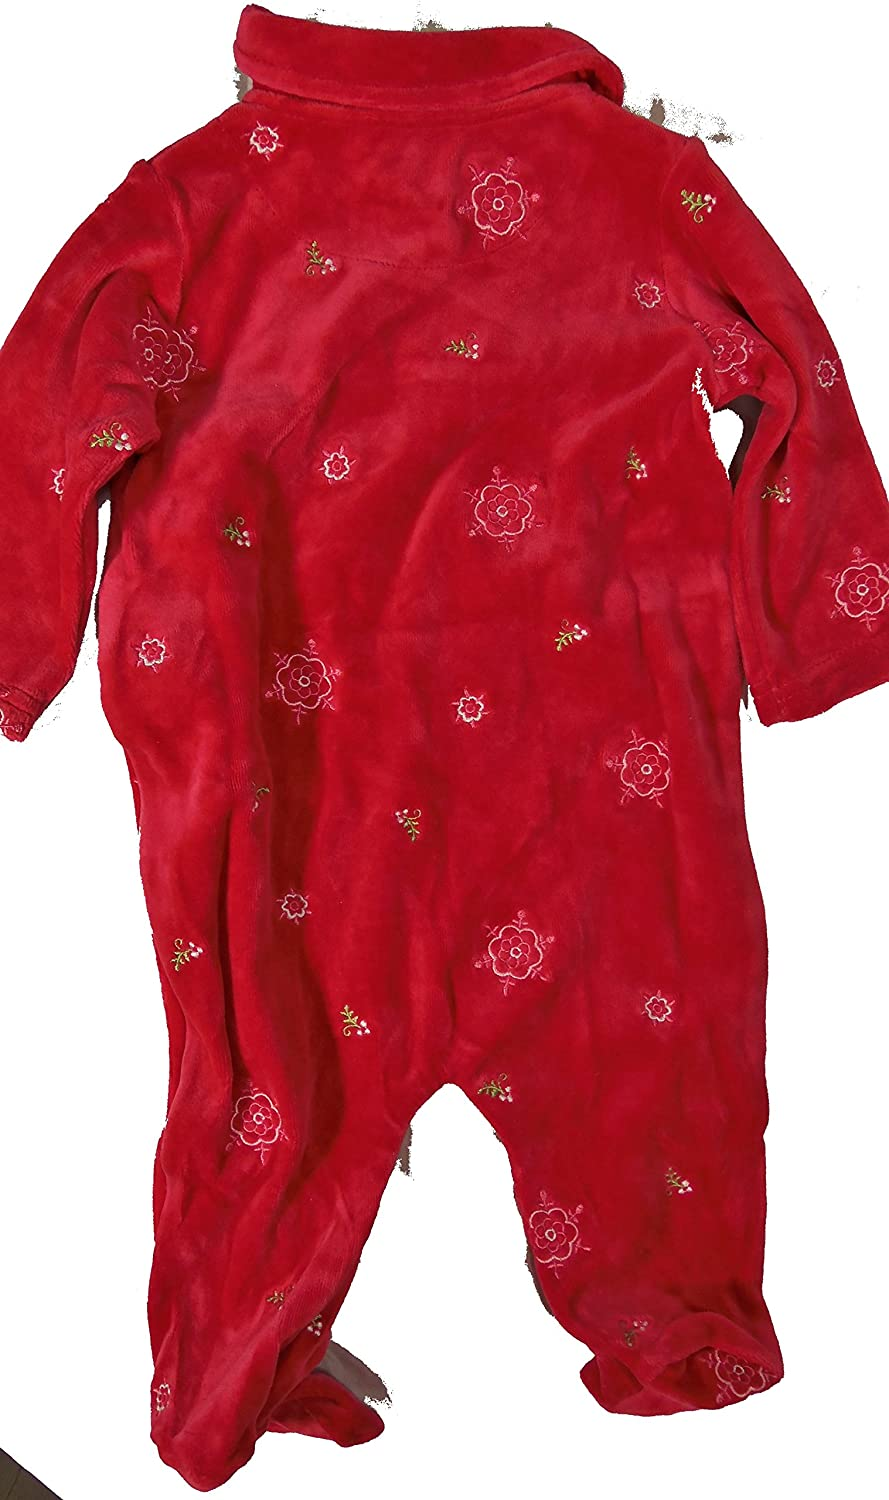 a20093a6e Amazon.com  First Moment s Infant Footed One Piece Flower Pajama s ...